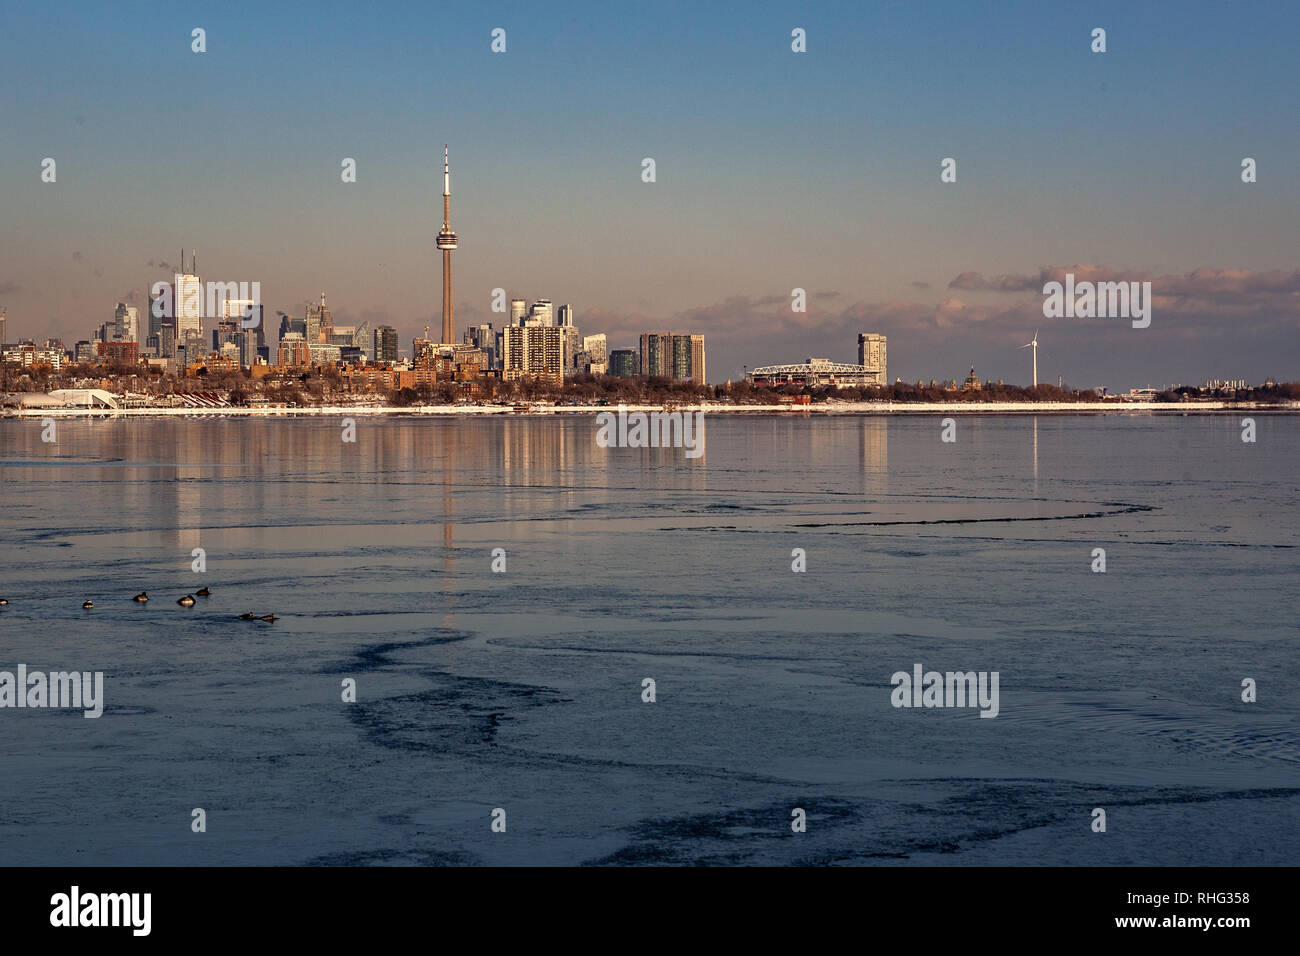 Panoramic Canadian winter landscape near Toronto, beautiful frozen Ontario lake at sunset. Scenery with winter trees, water and blue sky. - Stock Image